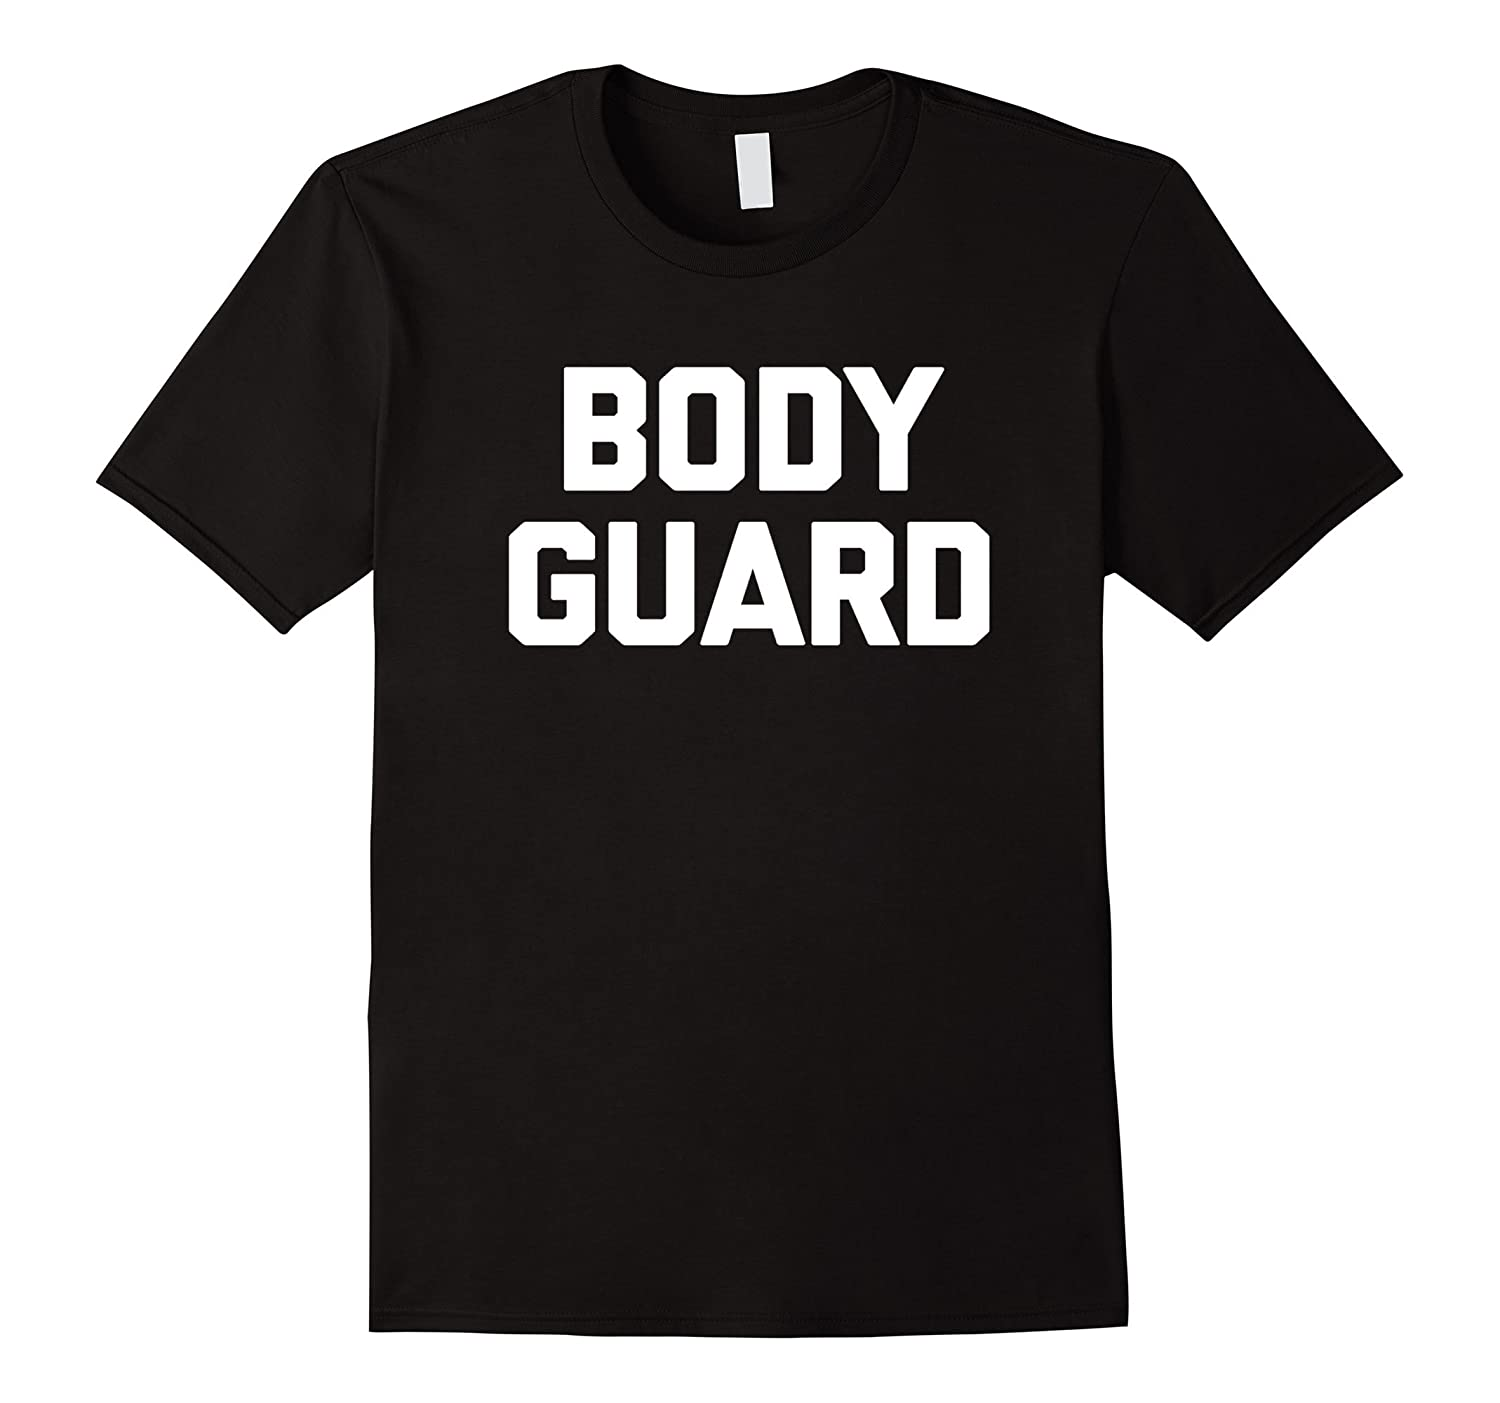 Bodyguard T-Shirt funny saying sarcastic novelty humor cool-TJ